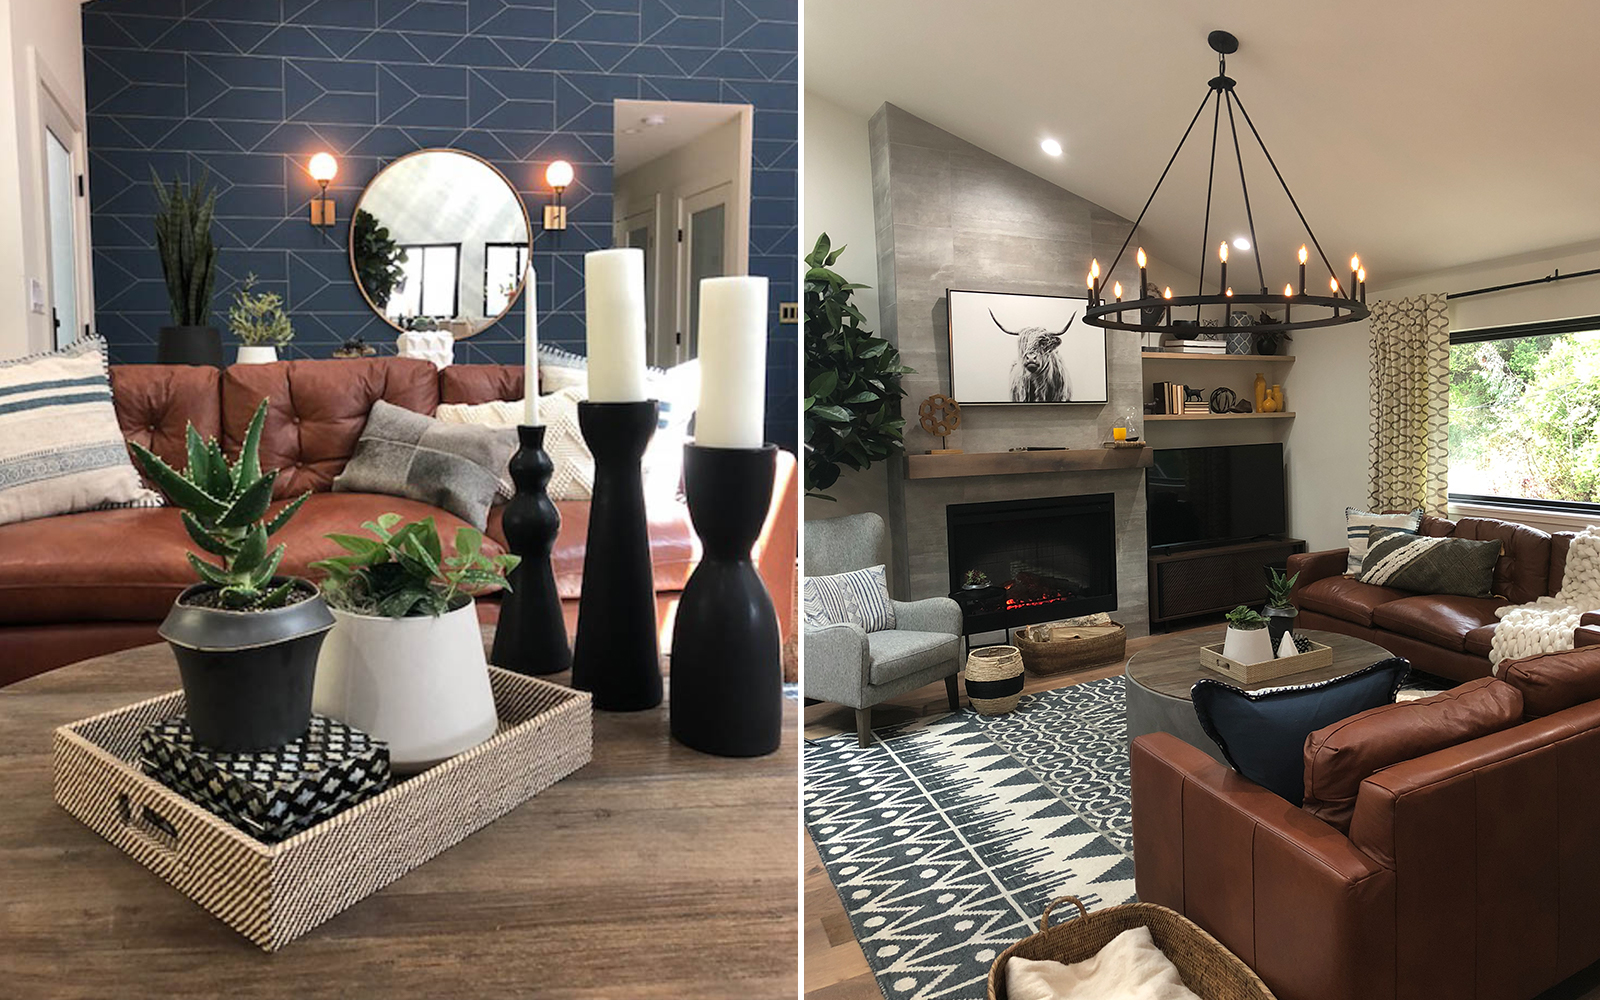 A styled living room for season 6 of Brother vs Brother.